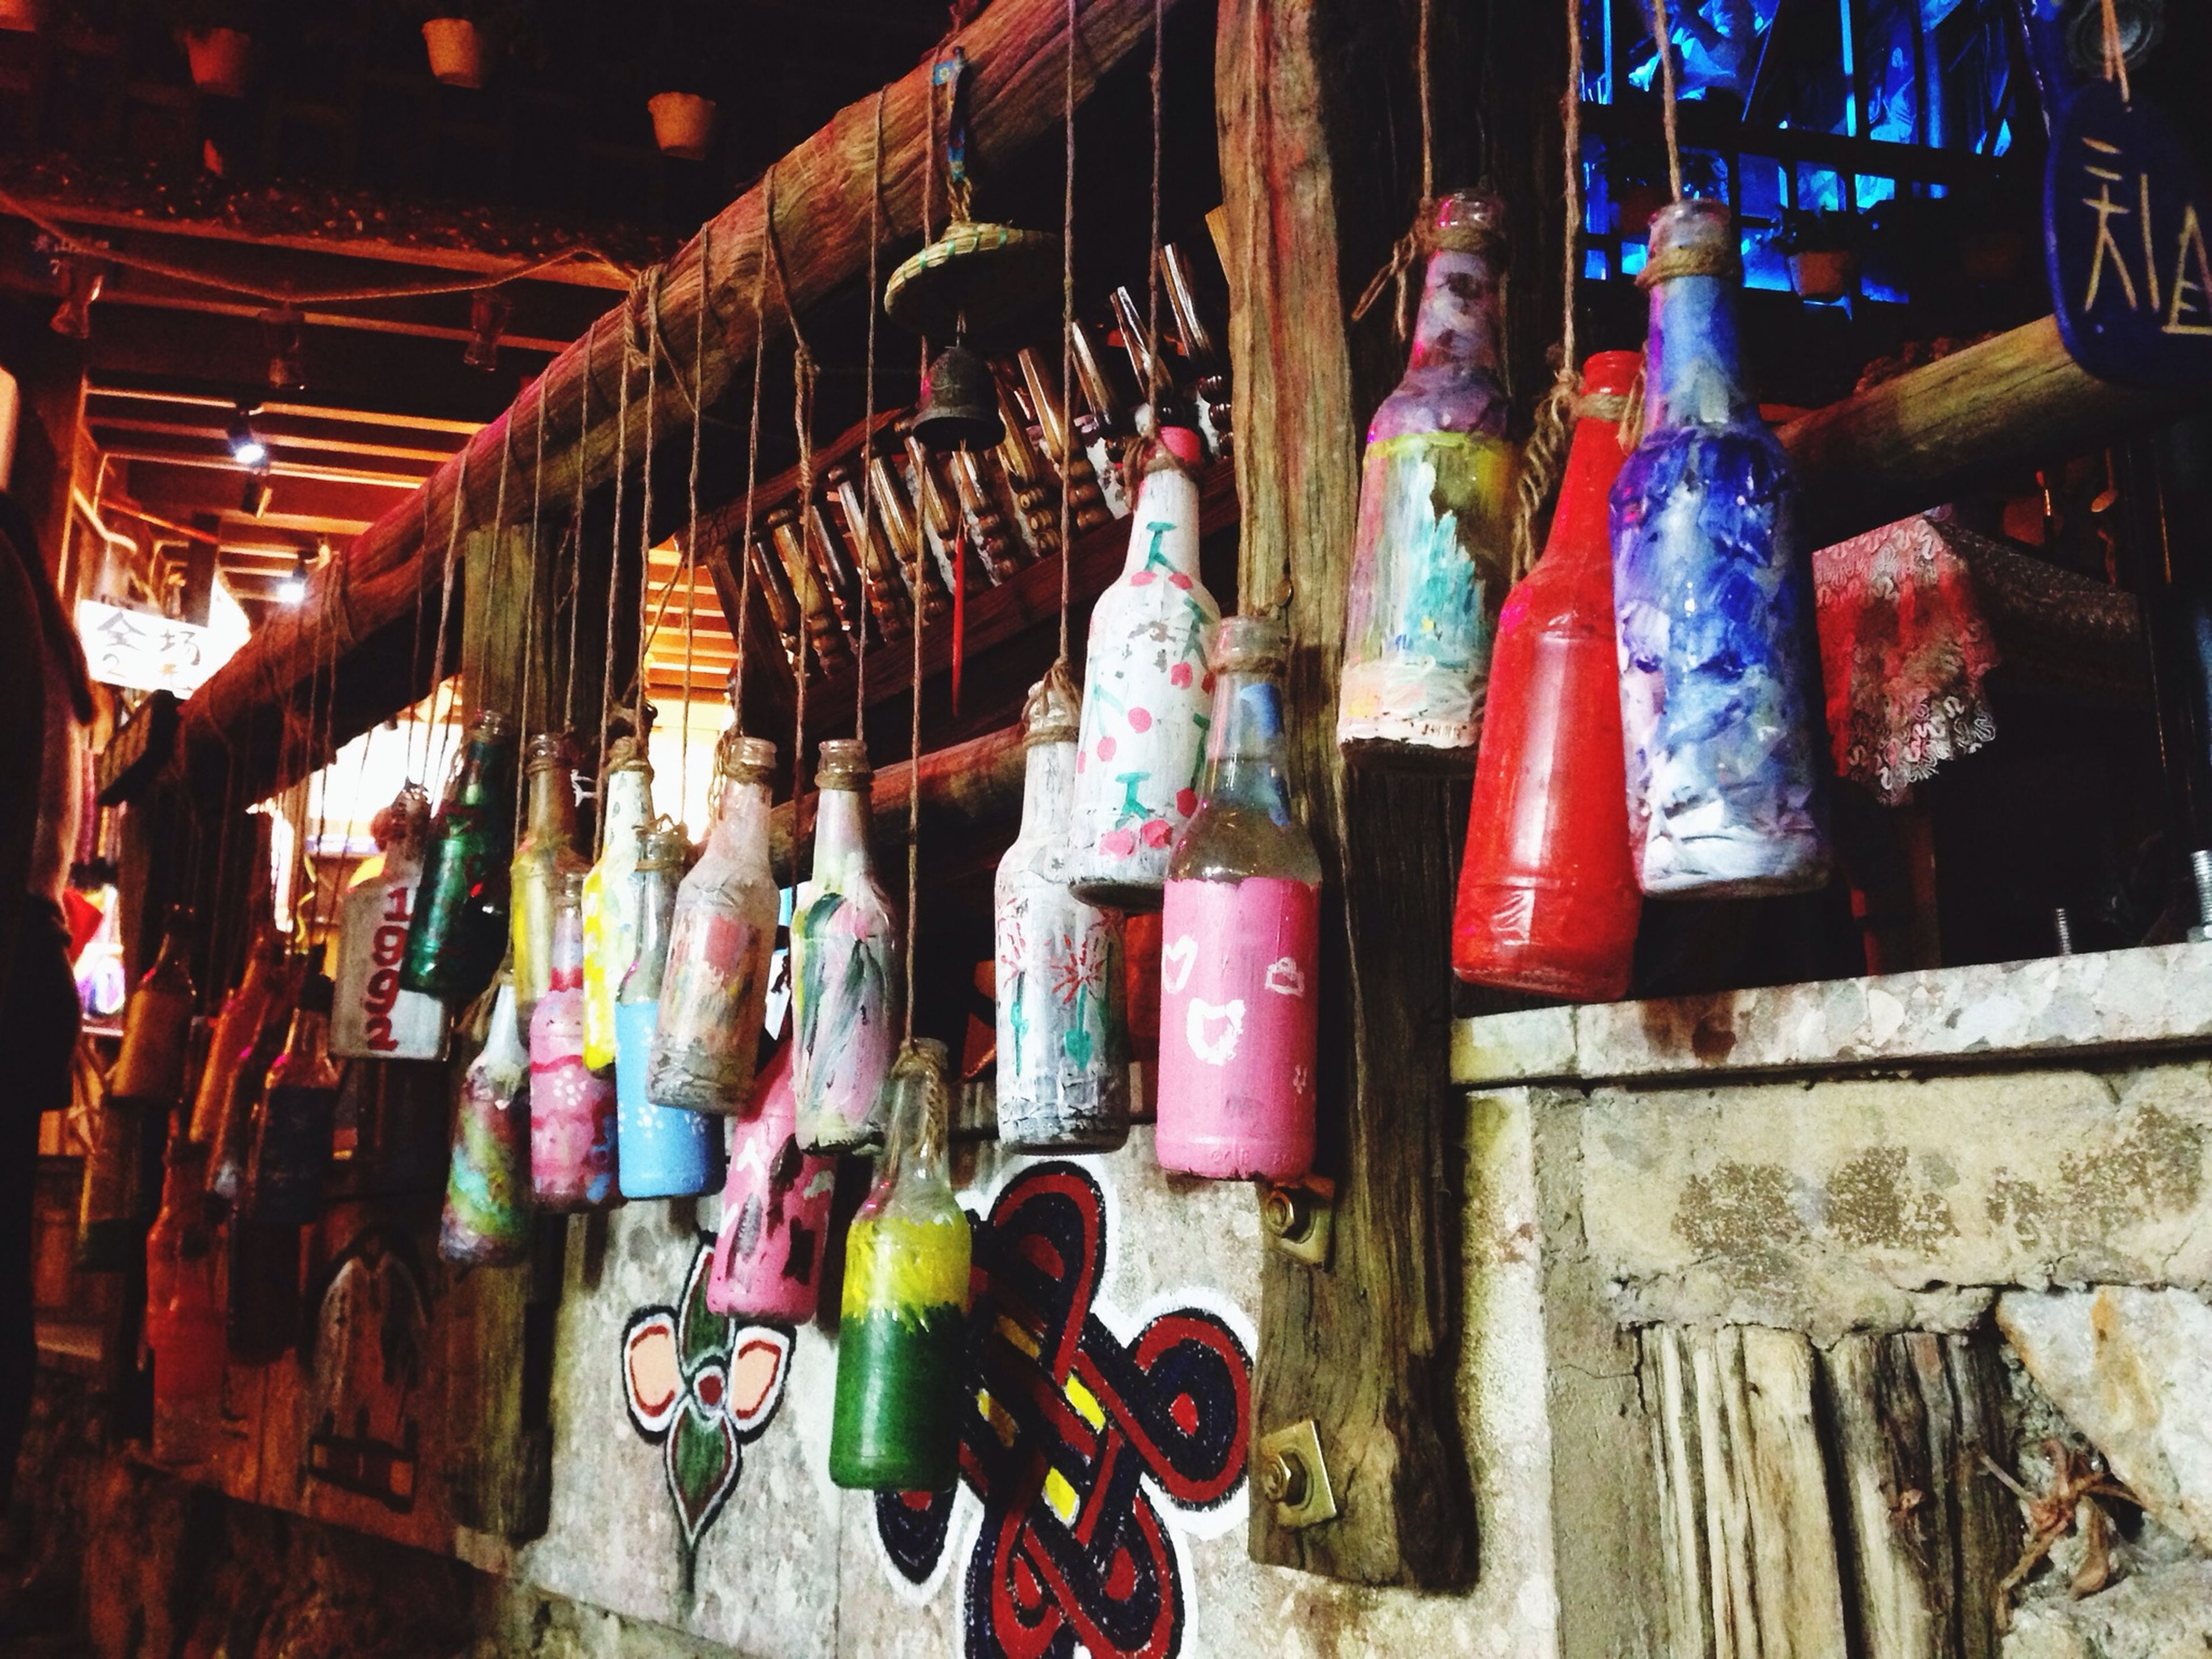 multi colored, for sale, retail, store, market, variation, market stall, choice, built structure, architecture, graffiti, large group of objects, in a row, hanging, abundance, art and craft, wall - building feature, arrangement, art, display